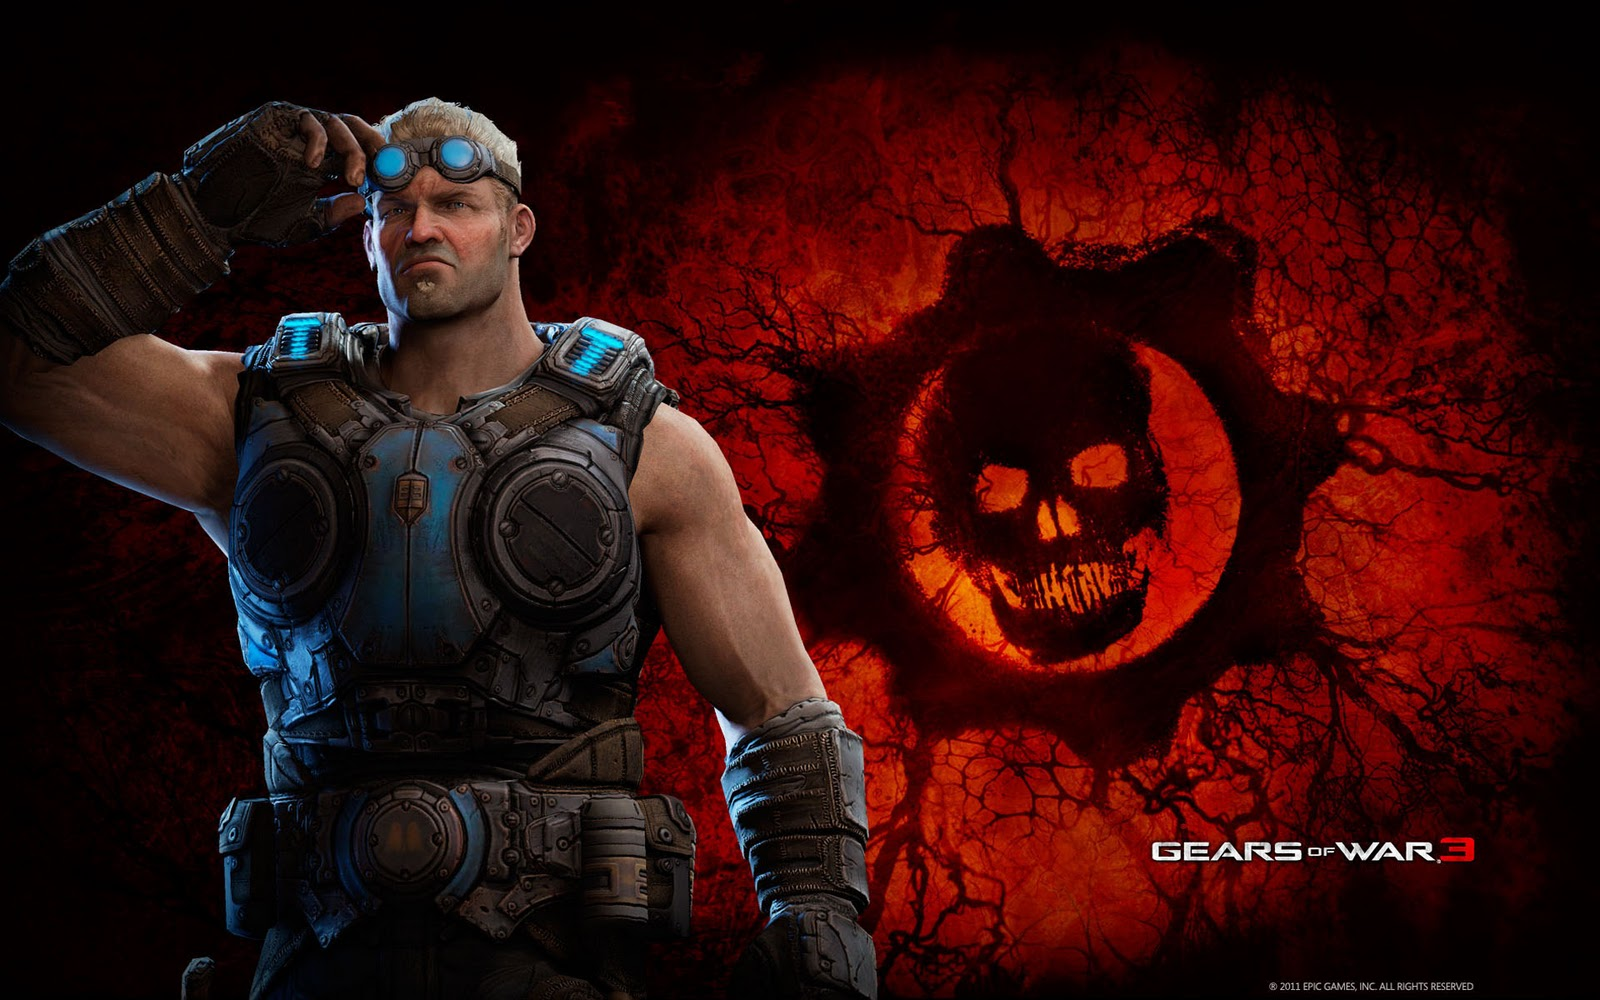 Gears of War HD & Widescreen Wallpaper 0.742359257023203